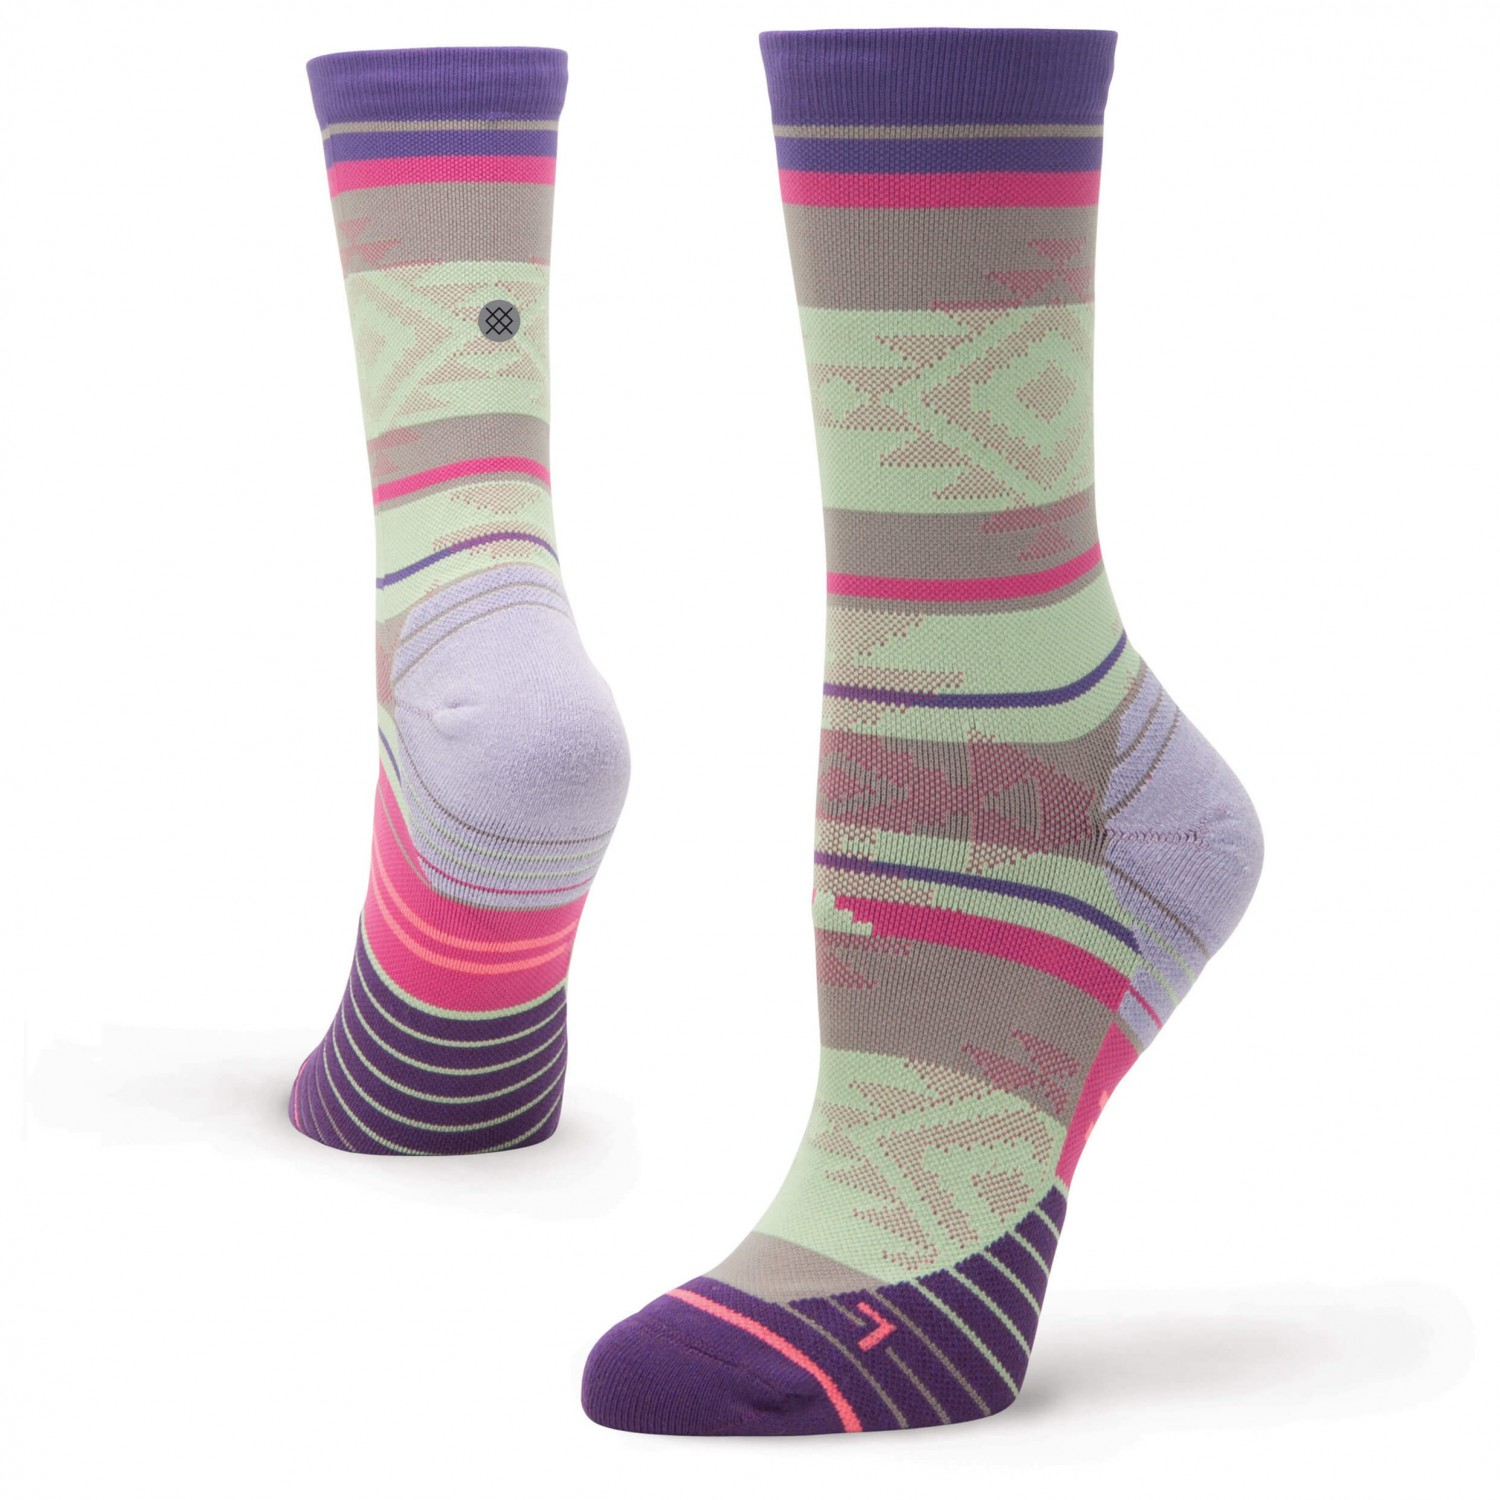 womens sports socks and performance socks by stance - HD1500×1500